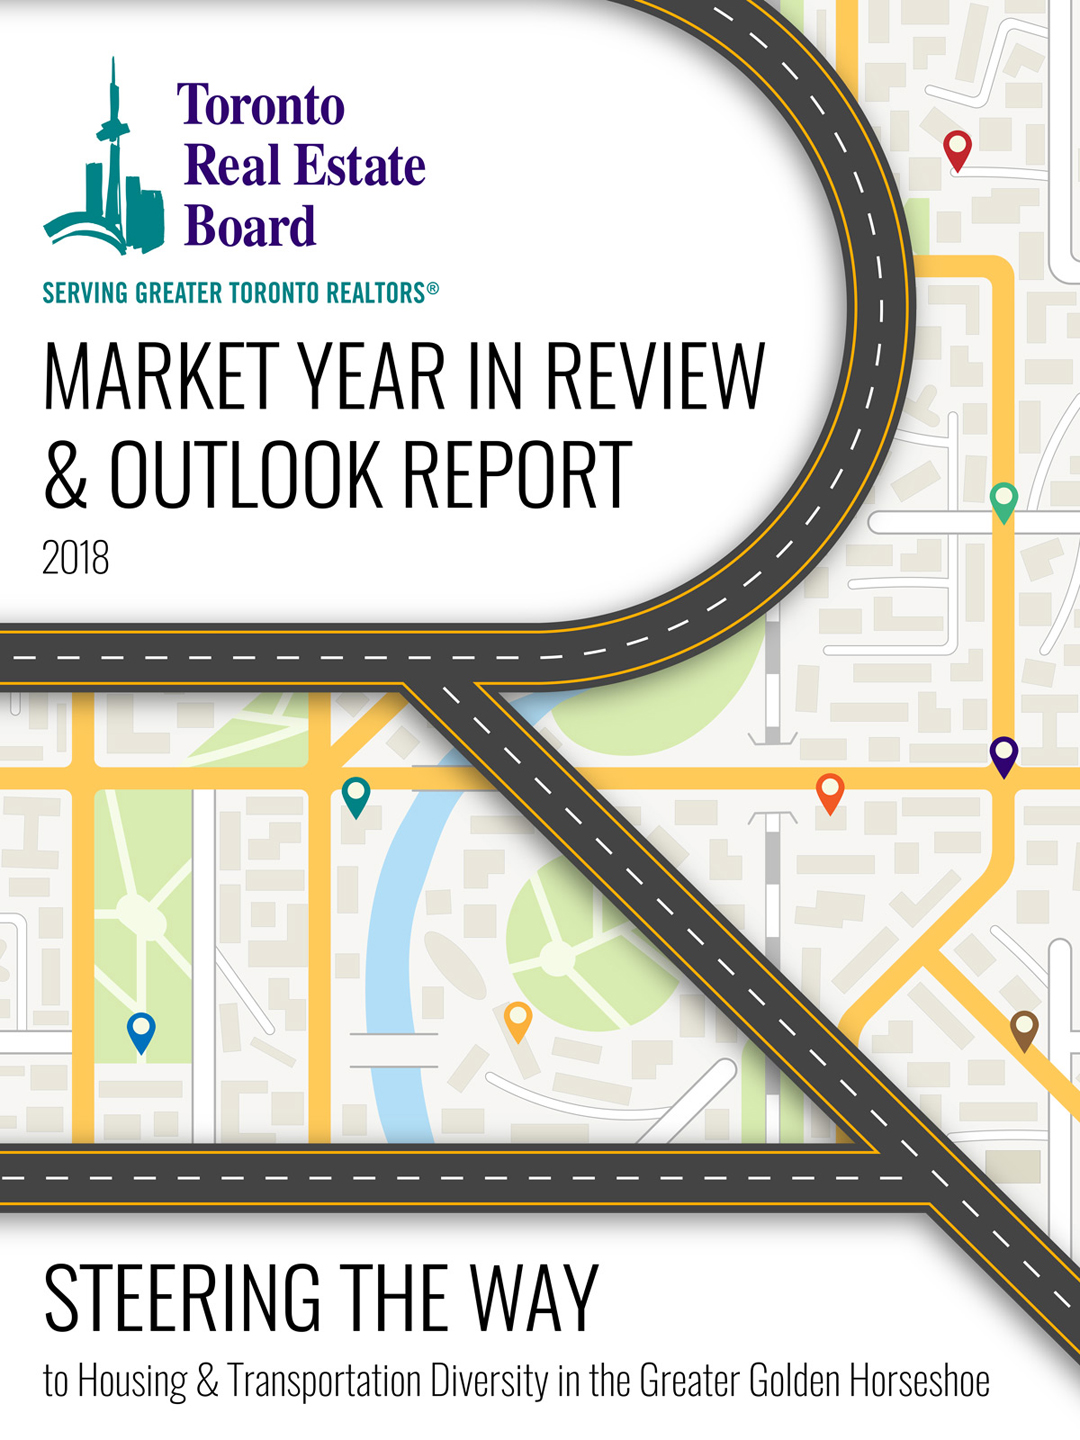 Market Year in Review & Outlook Report 2018 > GTA Real Estate